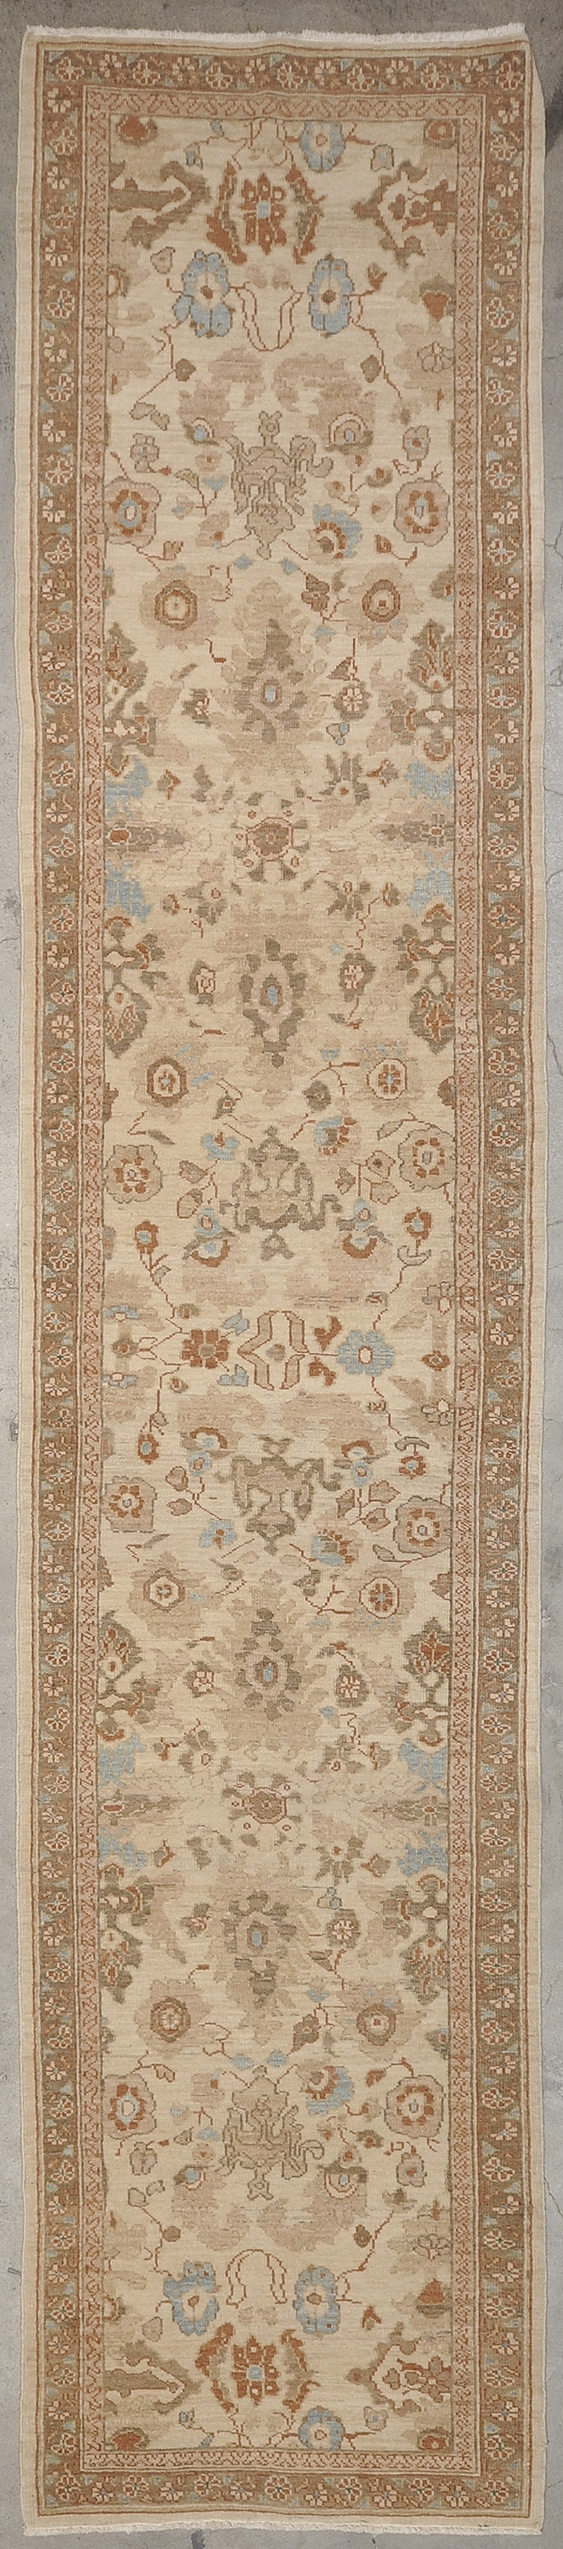 Ziegler & Co Sultanabad rugs and more oriental carpet 33617-